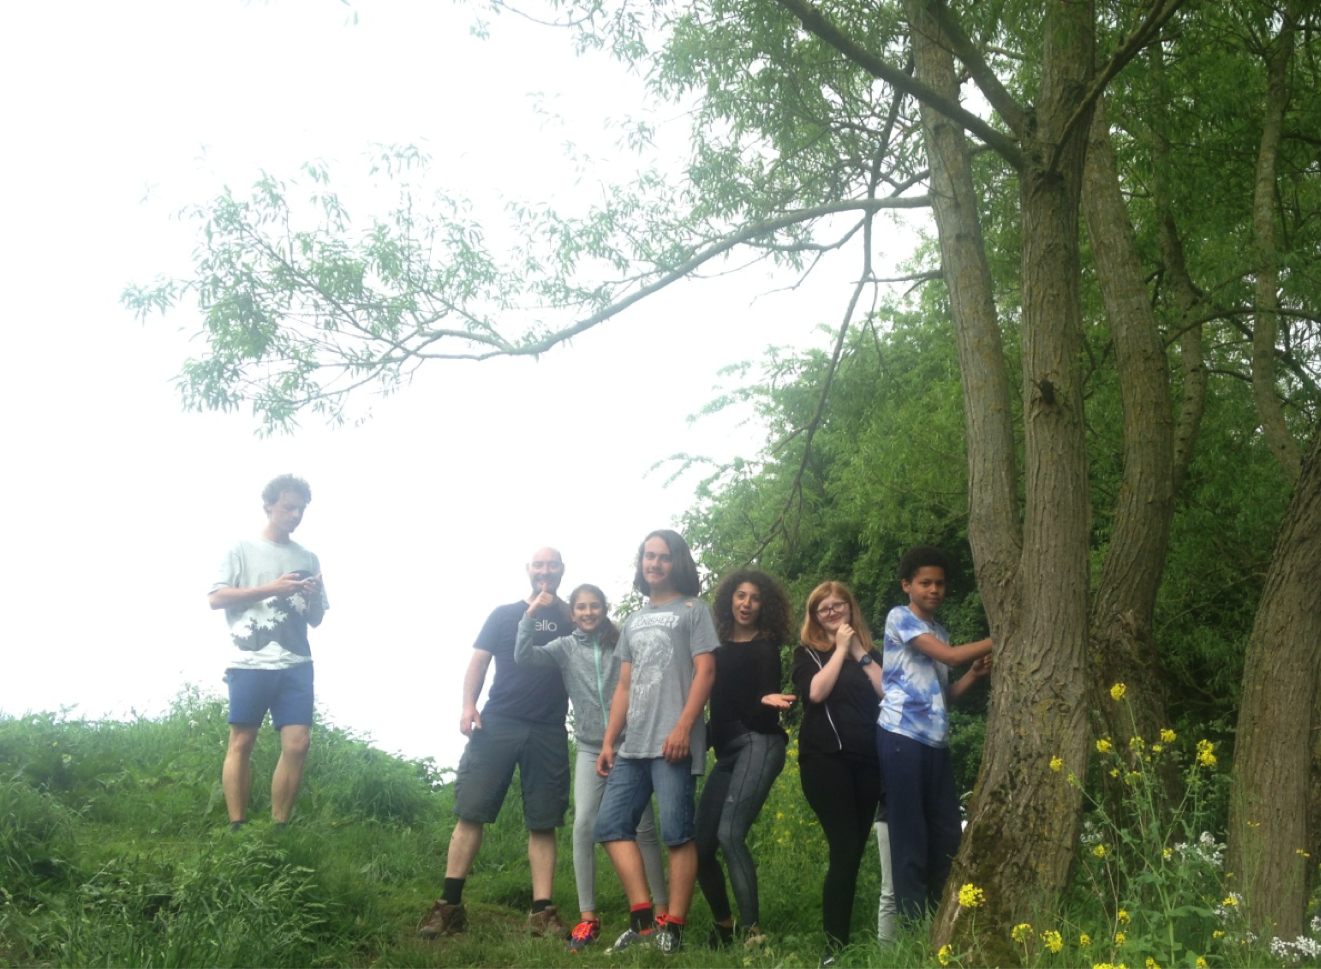 Group at Matlock standing by trees